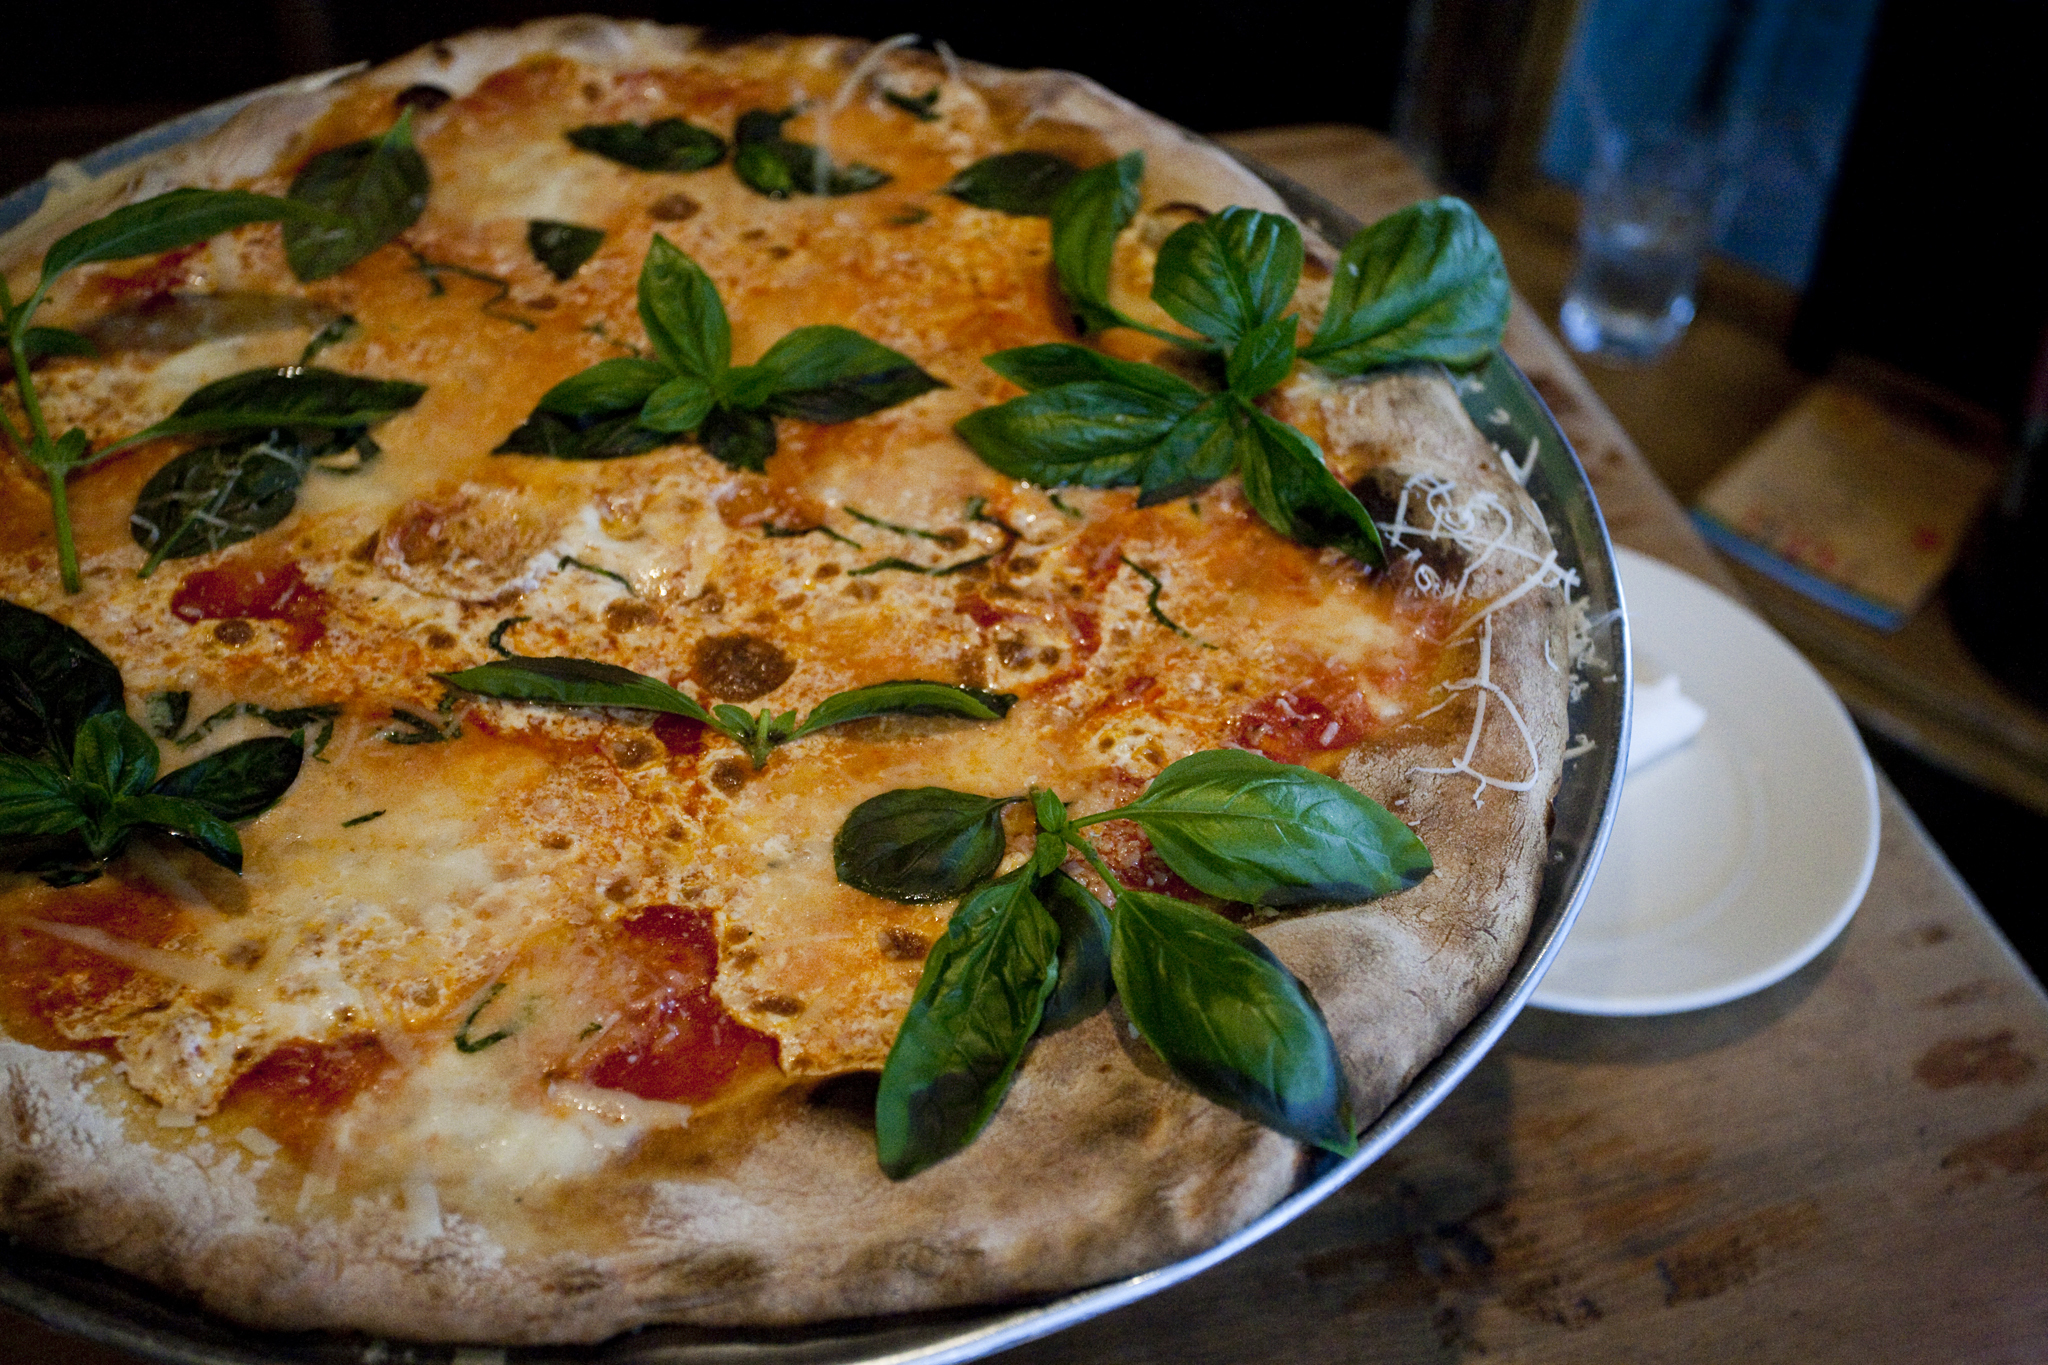 Pie with basil at Lucali